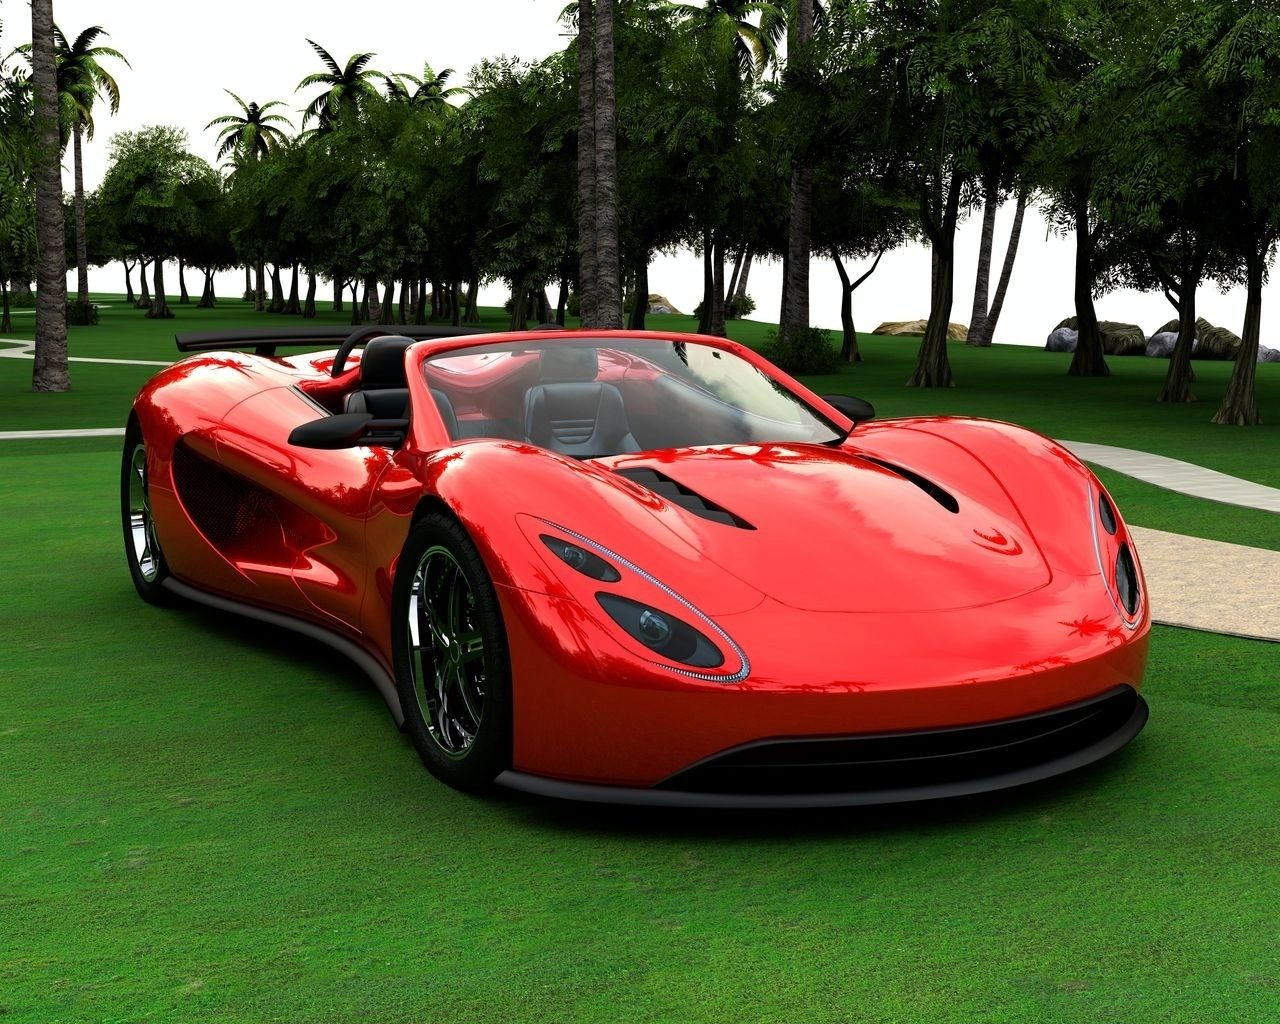 hot cars wallpapers %252820%2529